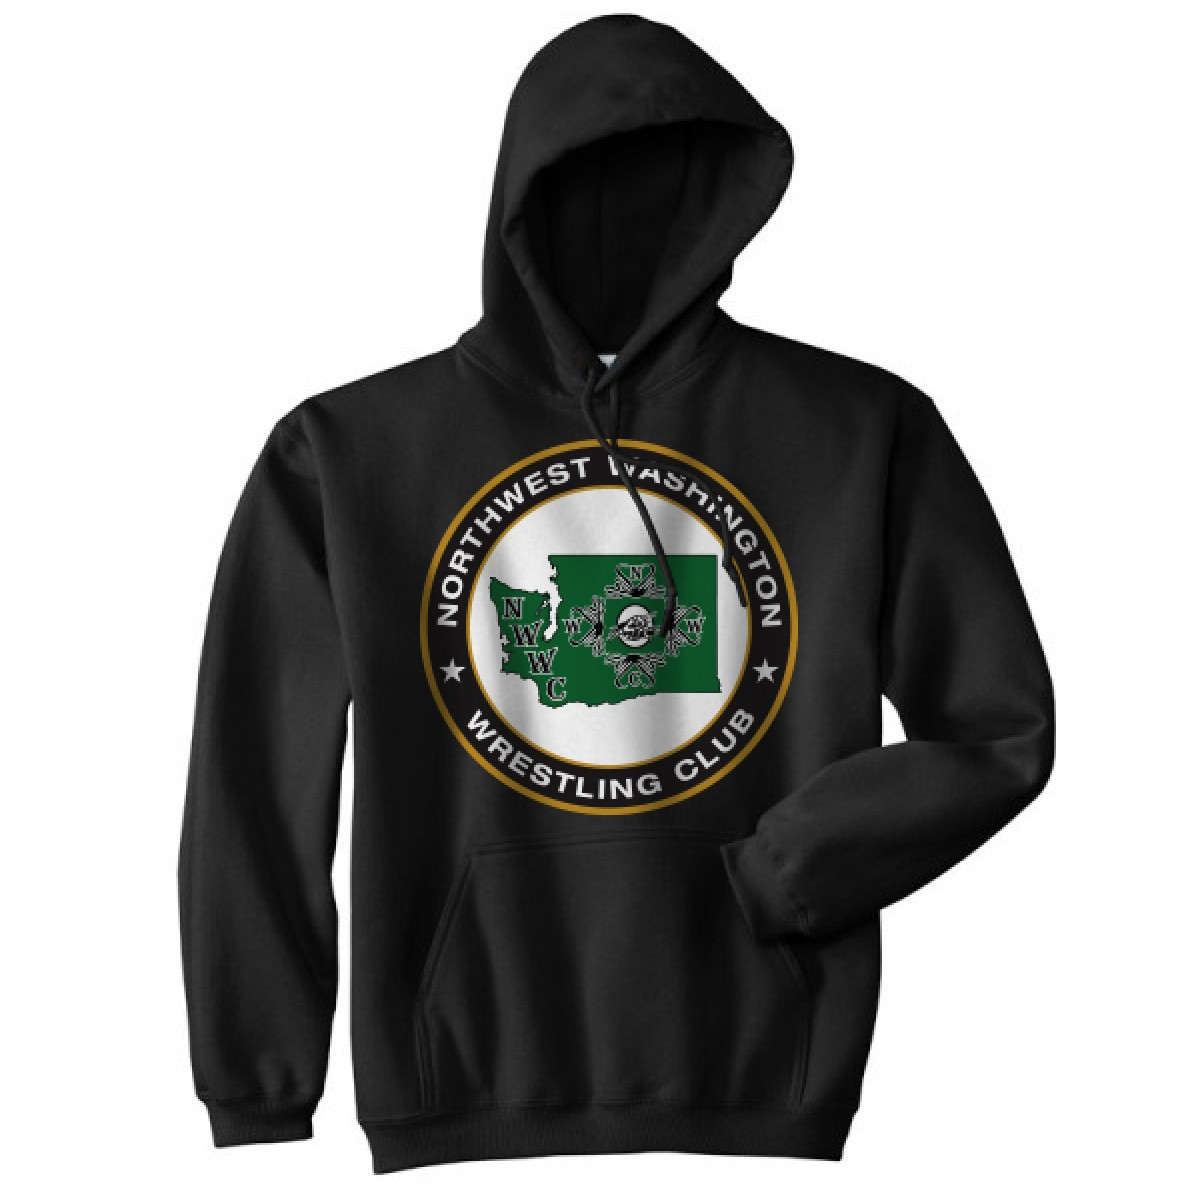 NWWC Black Hoodie With Green Logo-Black-YM